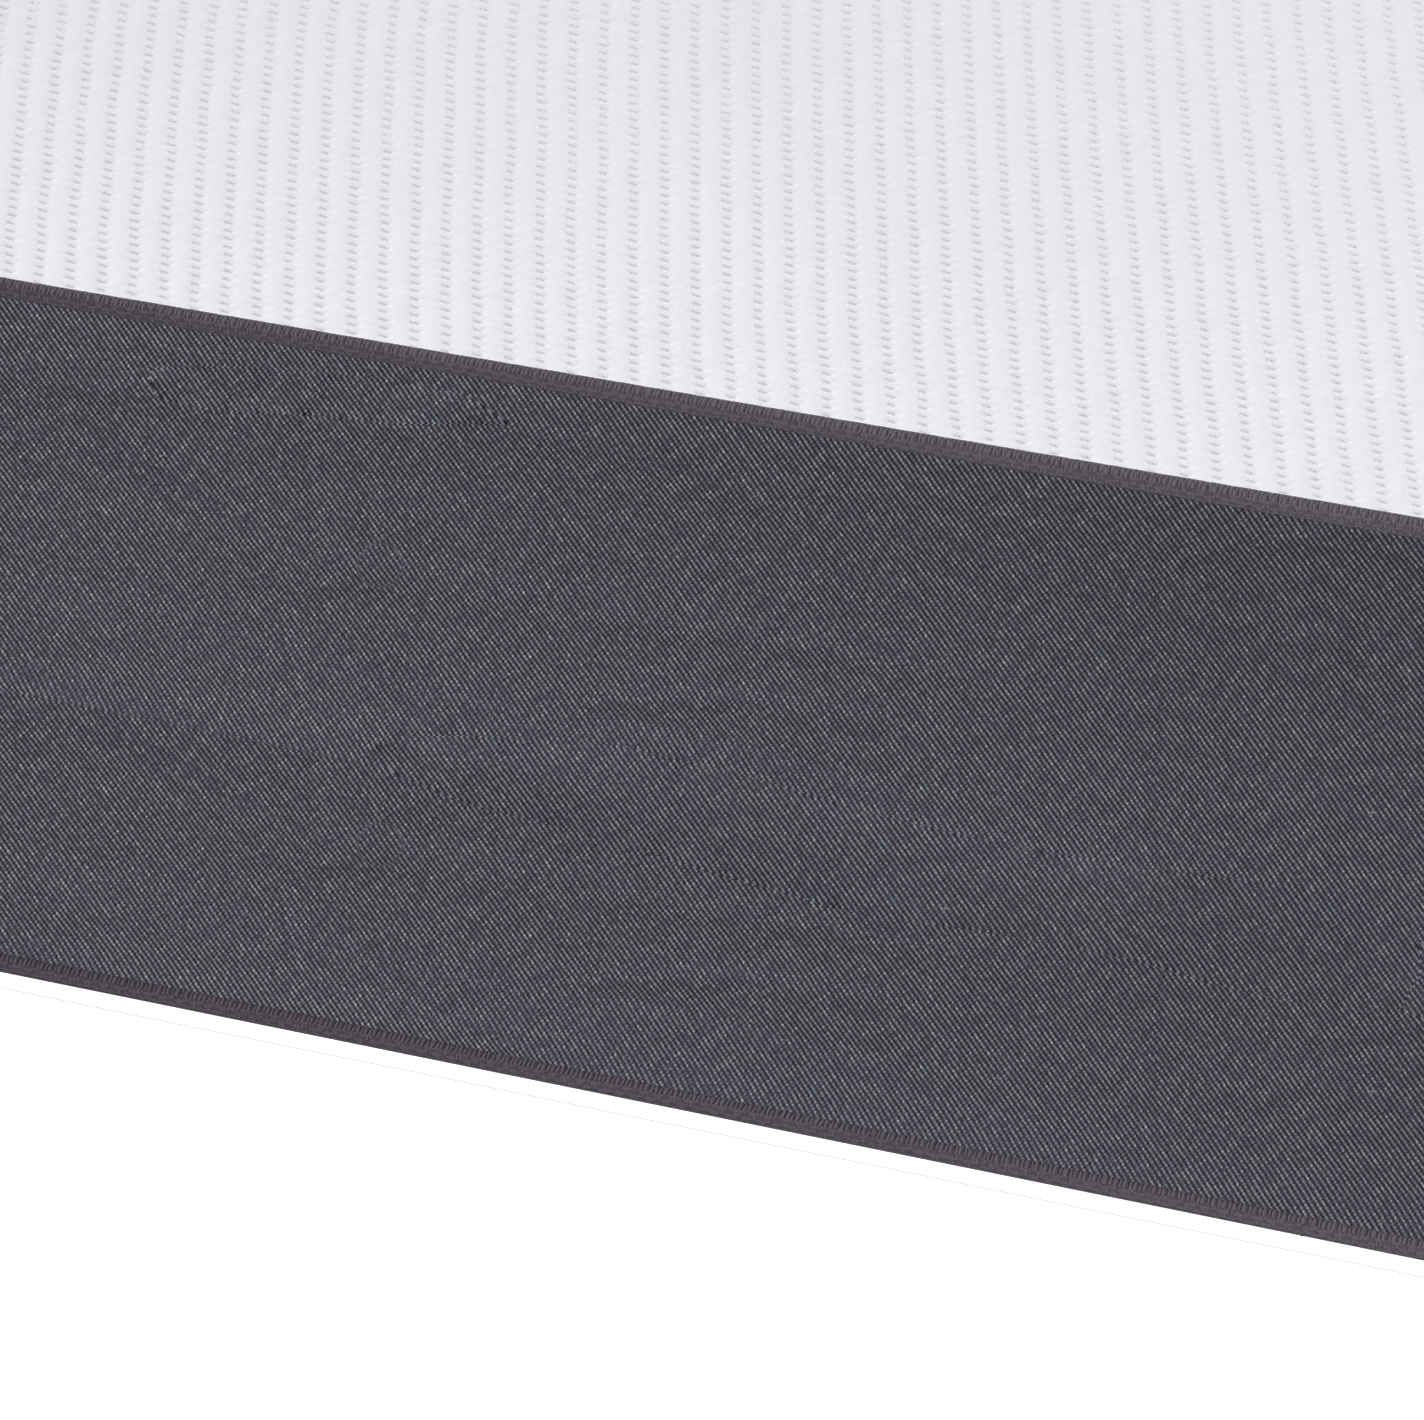 Graphite Anti-Bacterial & Hypoallergenic